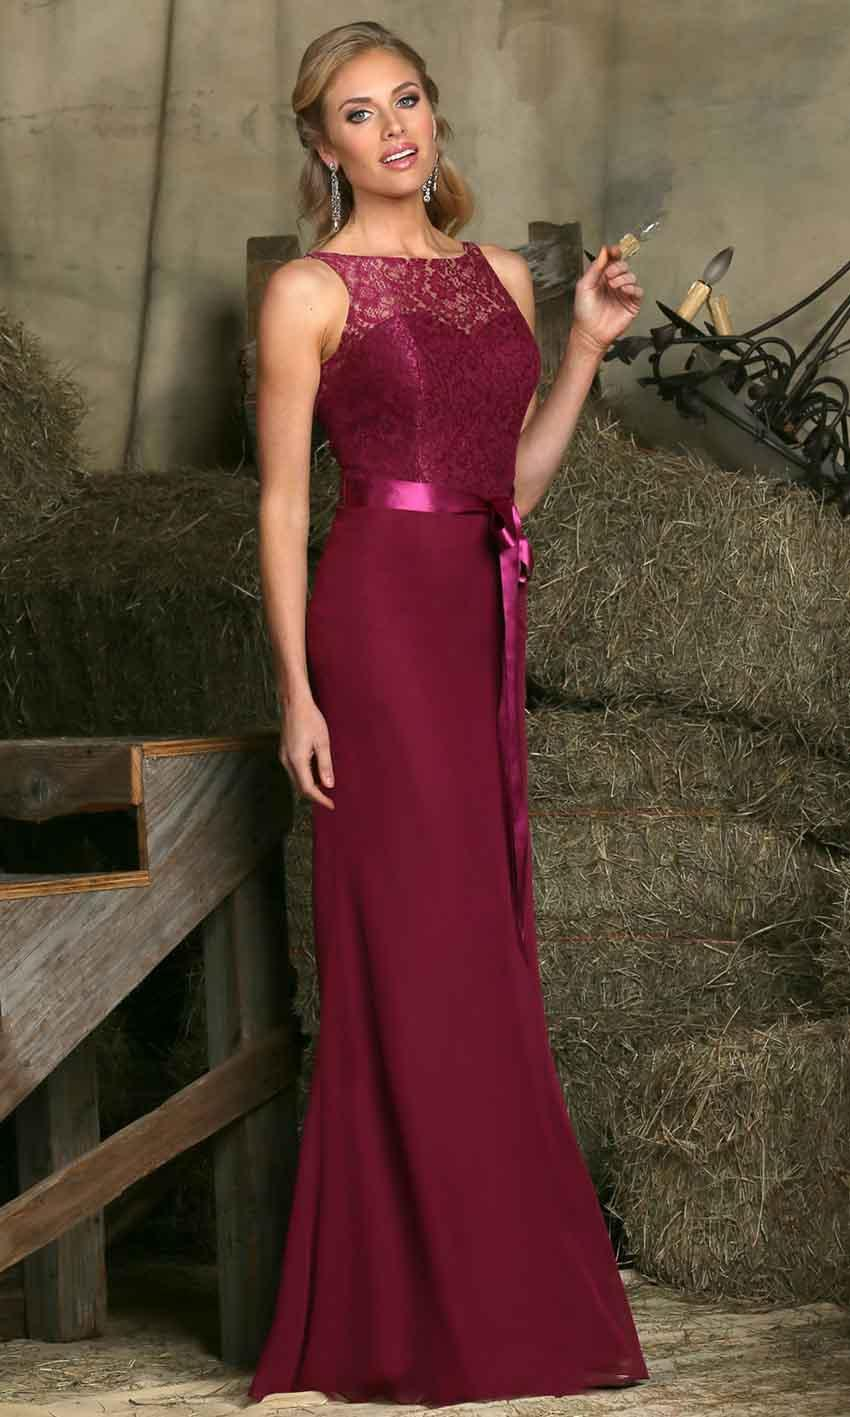 Bridesmaid Dresses 2017 Prom Evening Look For Elegant Tail Gowns Or Special Occasions